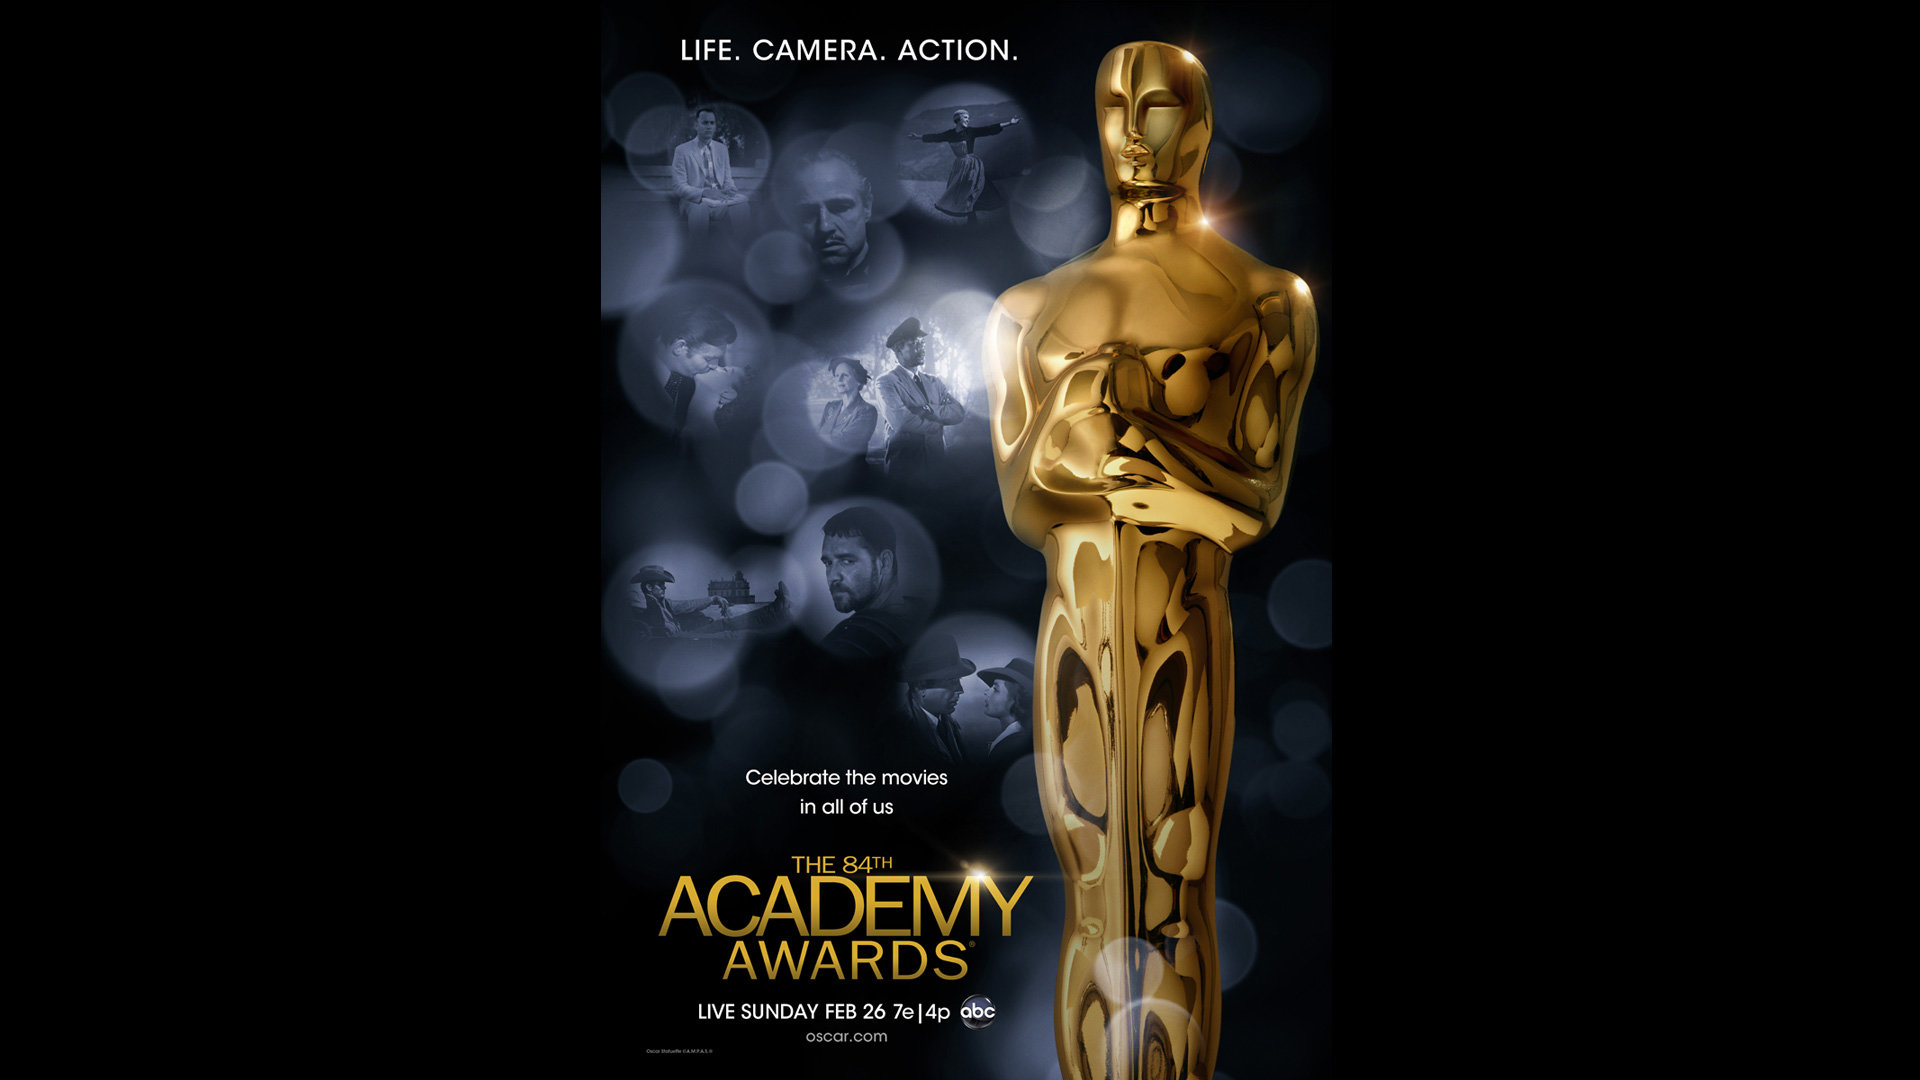 Academy Poster Celebrates the Movies   Oscars 2020 News 92nd 1920x1080